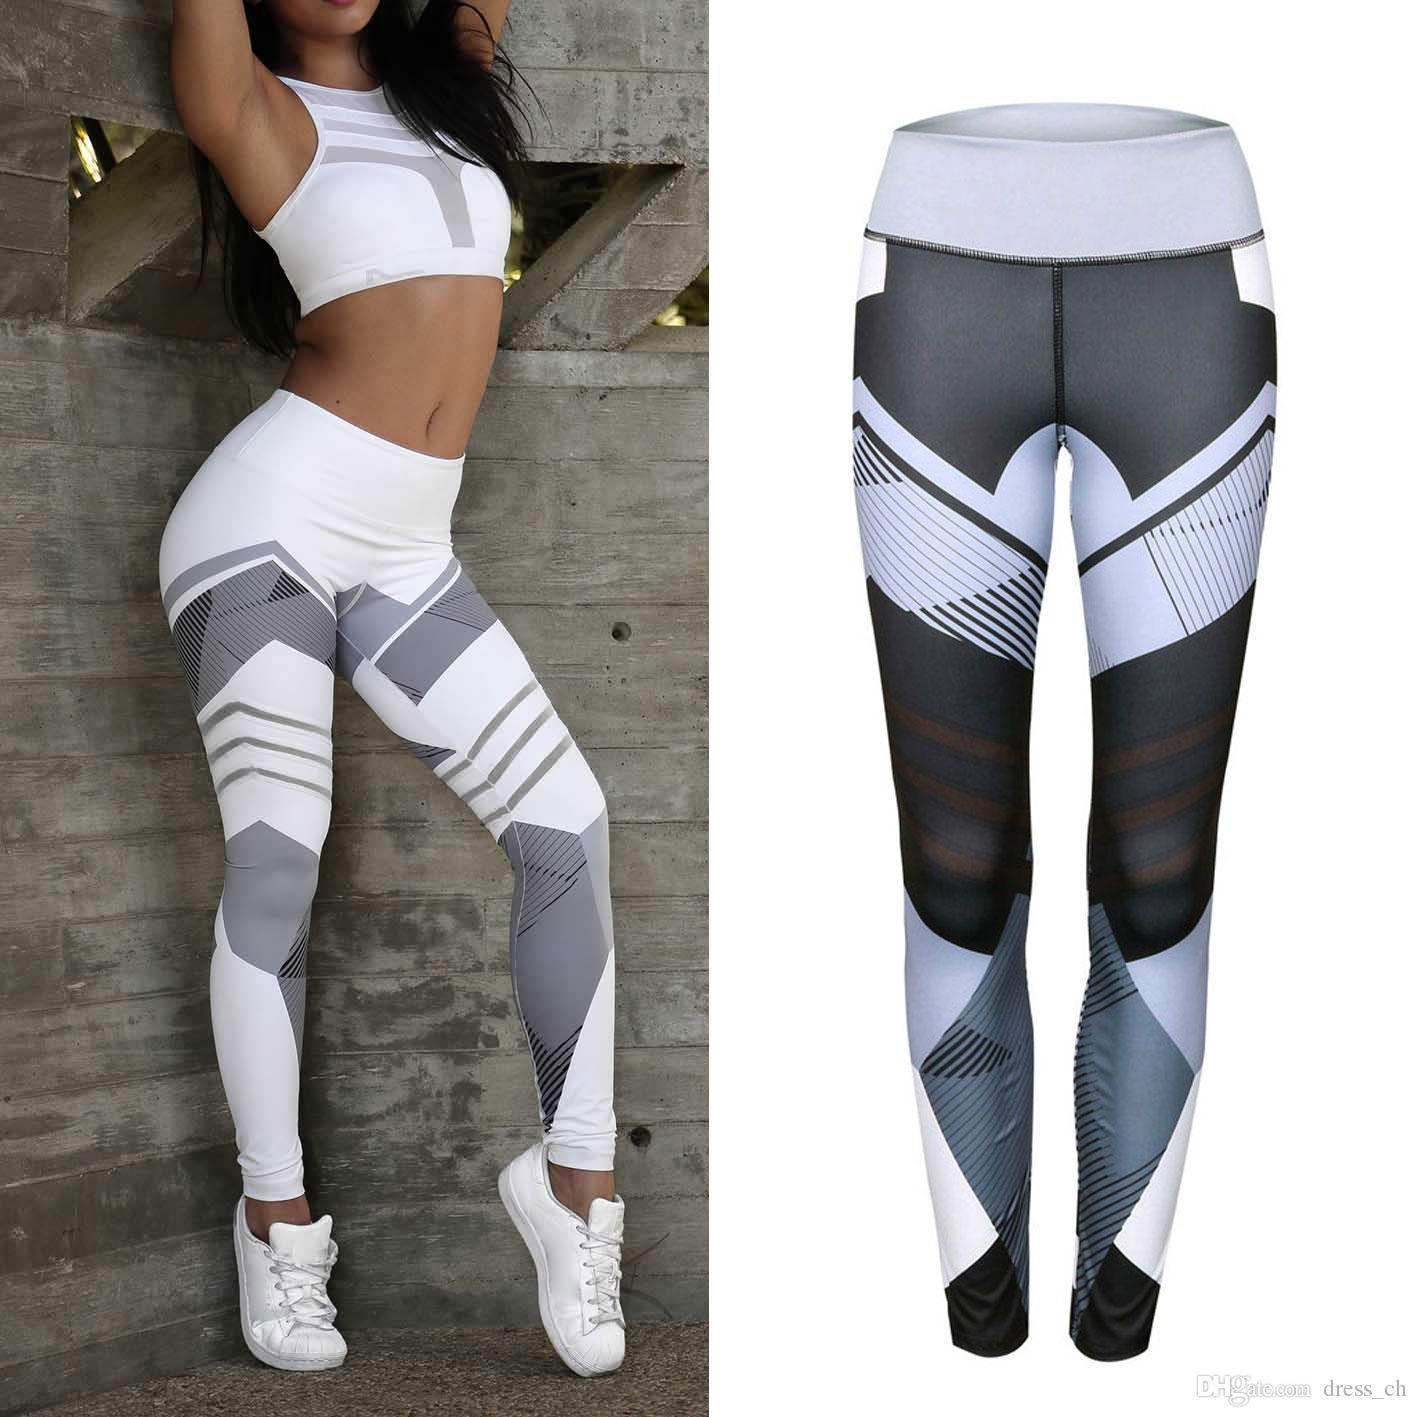 05c3ed6d93cf3a 2019 Geometric Pattern Yoga Pants Women Fitness Trousers Leggings  Breathable Running Sexy Tights Sport Gym Leggins Athletic Workout  Sportswear From ...